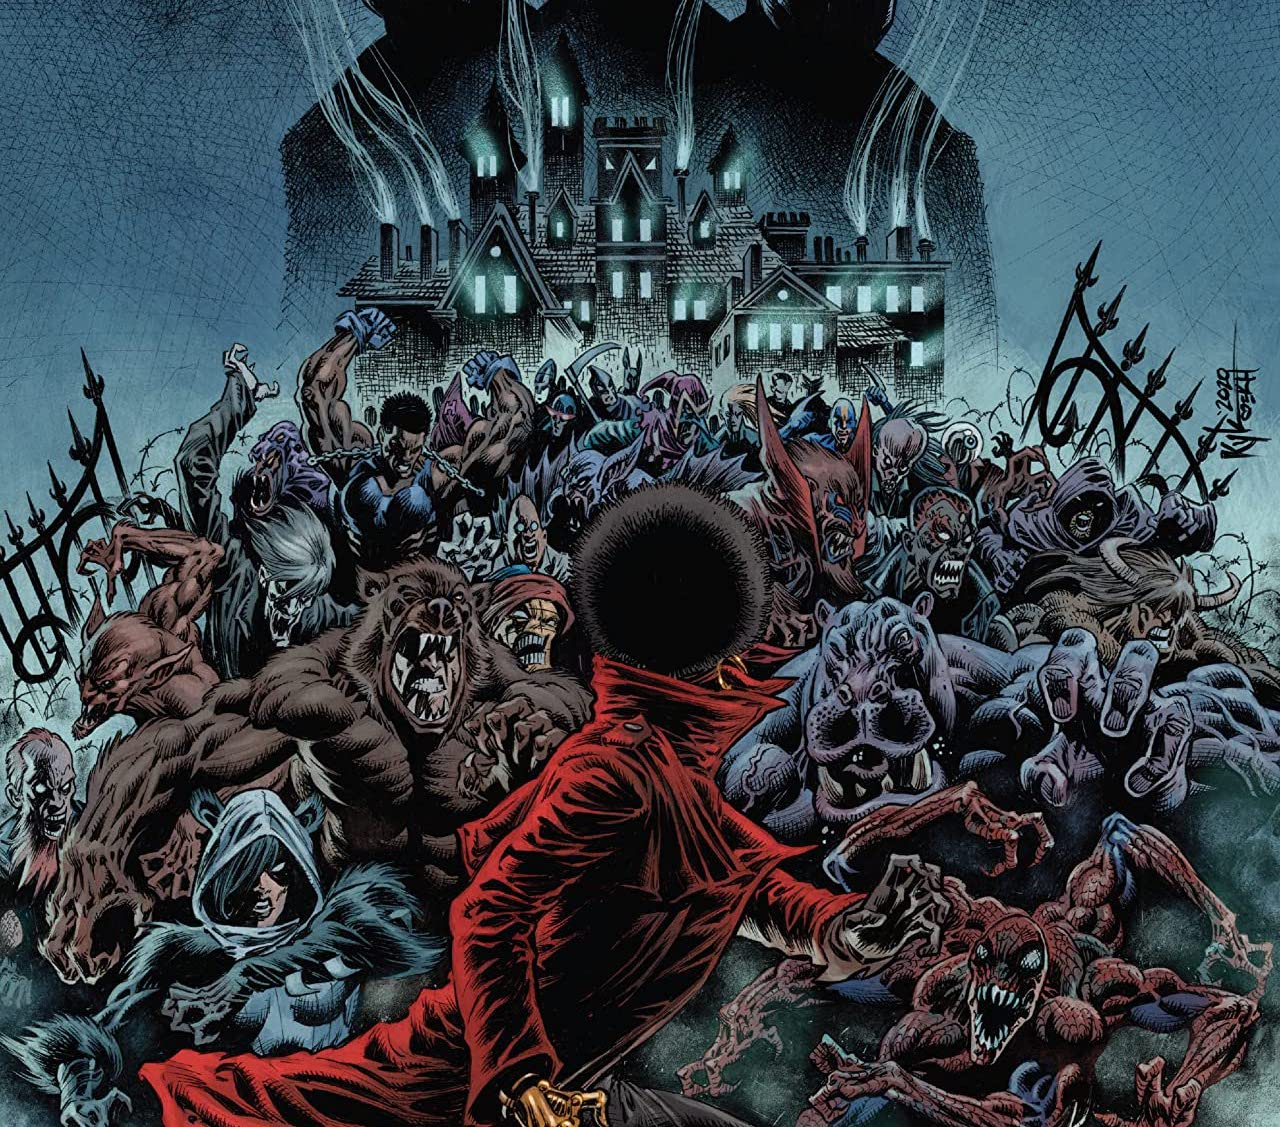 'Ravencroft' #5 makes a strong case for the location to continue on, but at a price.